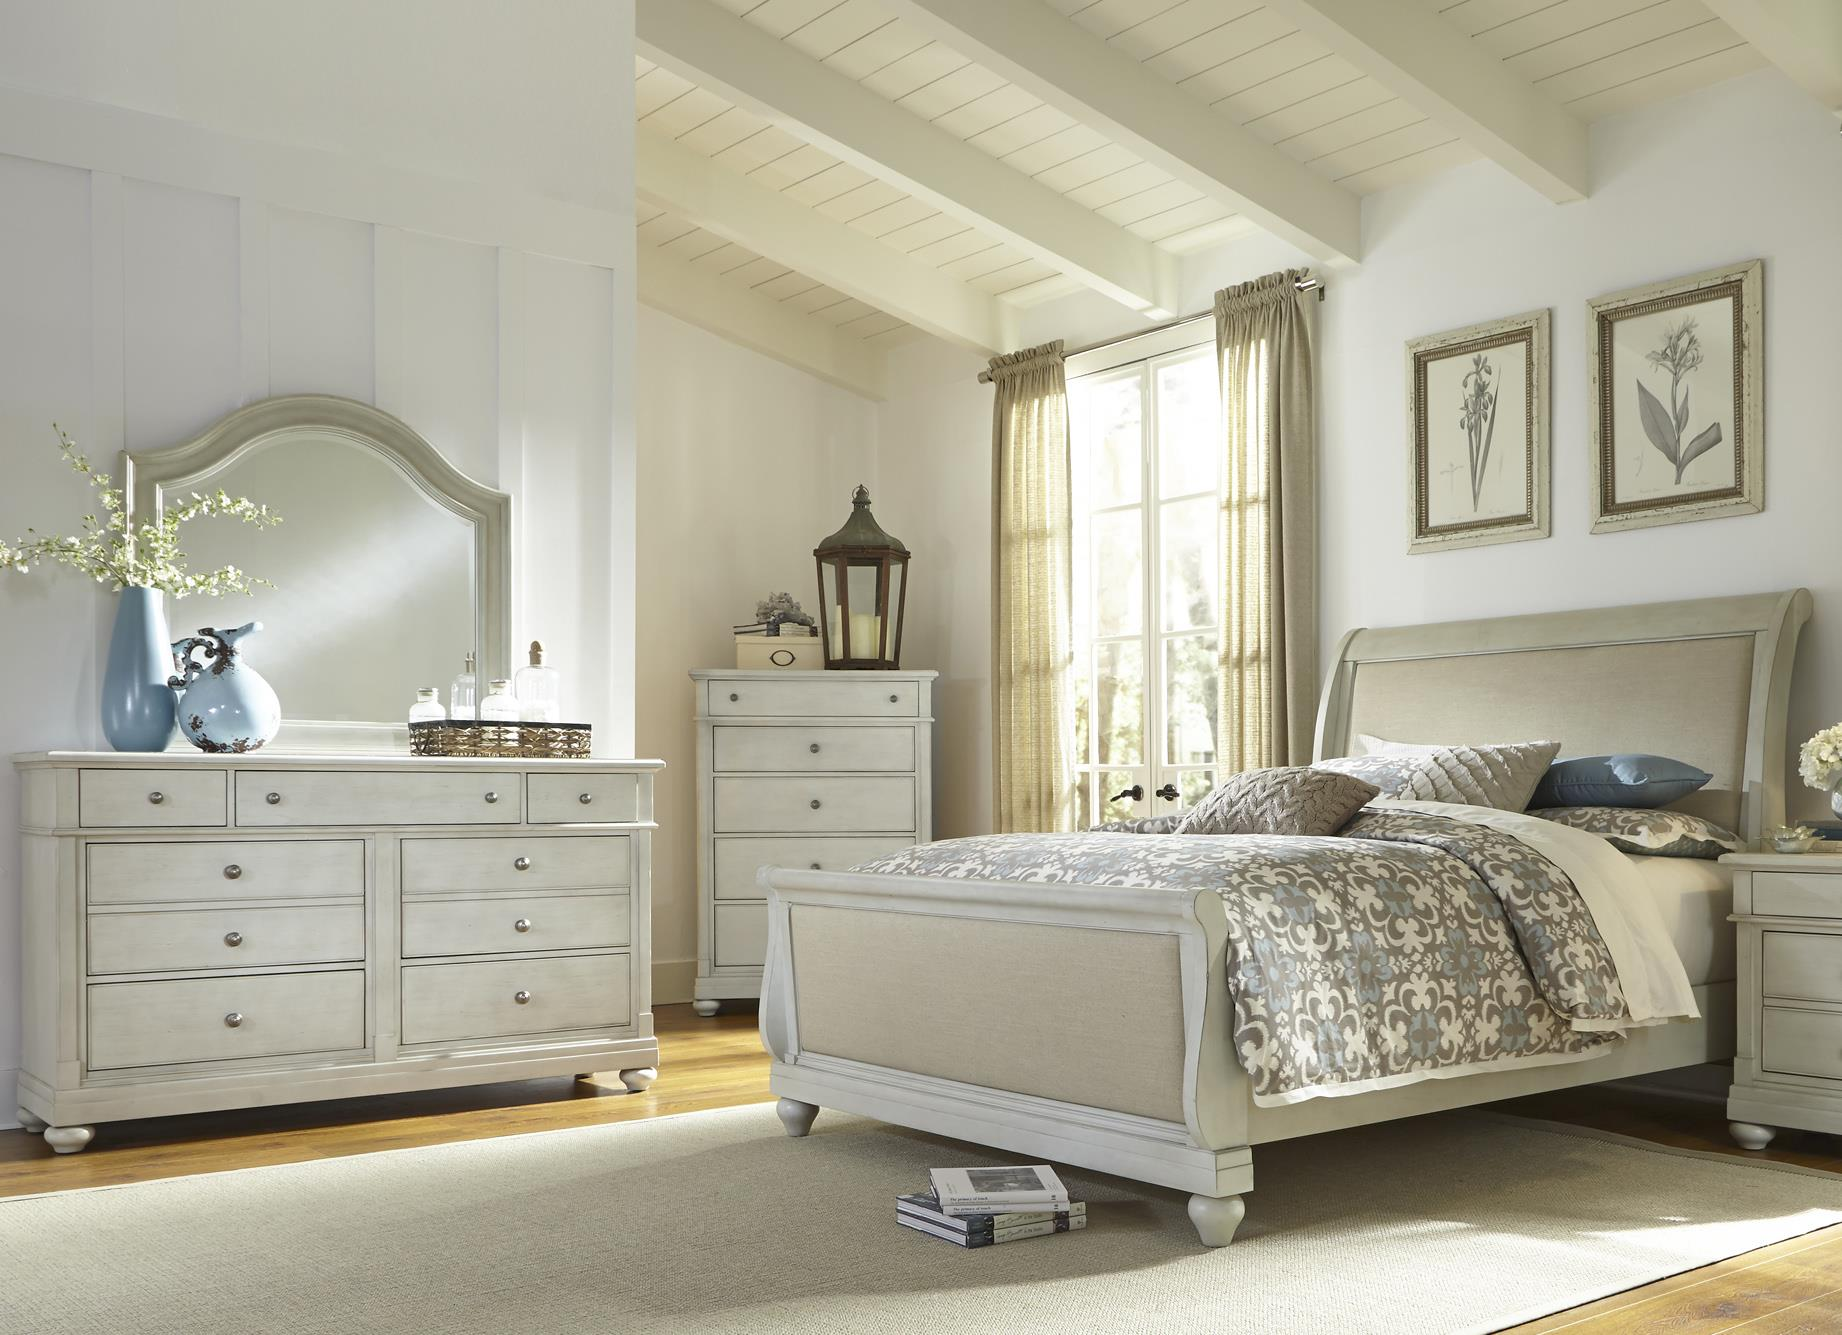 Liberty Furniture Harbor View King Bedroom Group - Item Number: 731-BR-KSLDMC